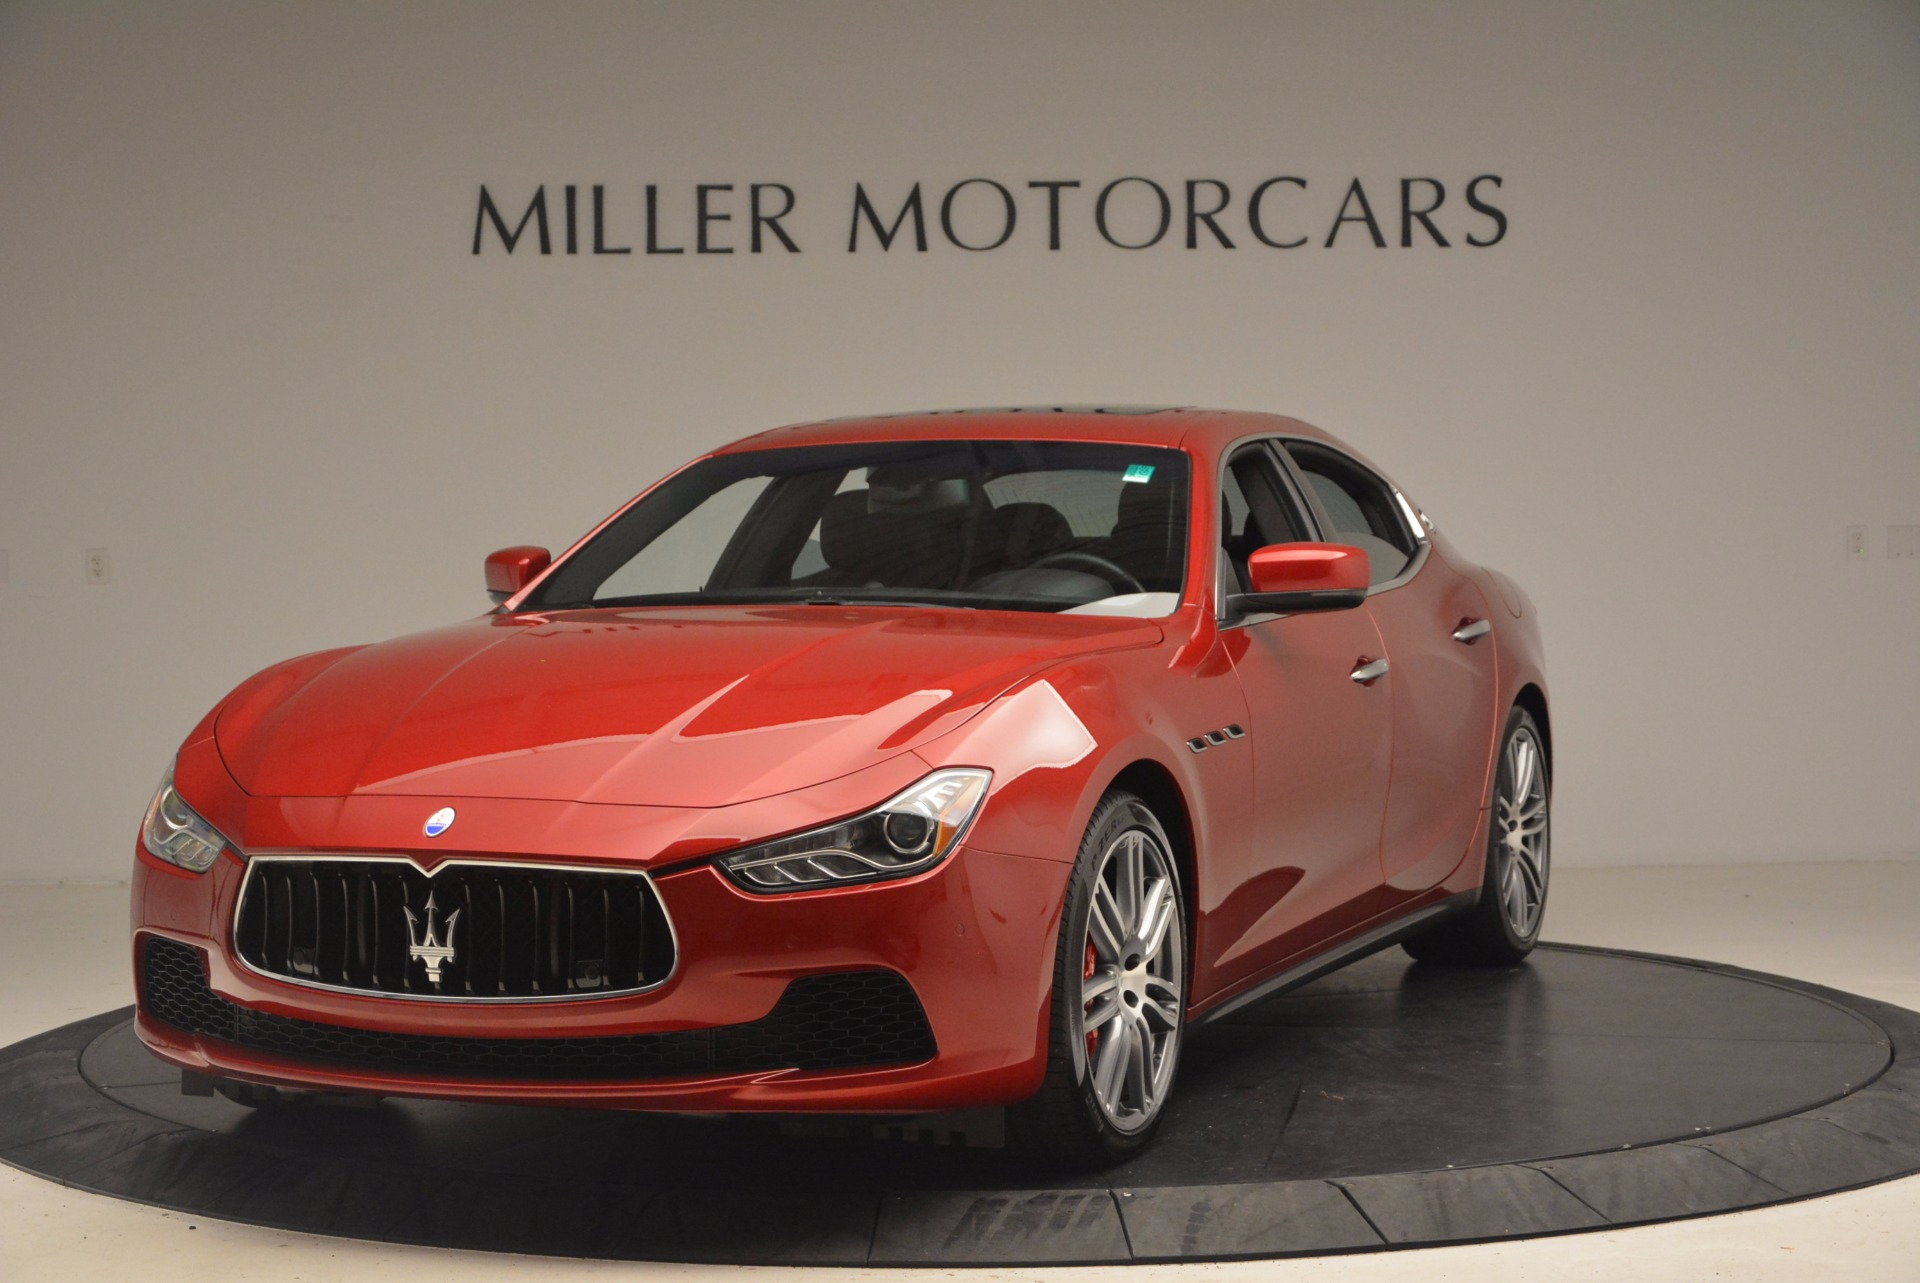 Used 2014 Maserati Ghibli S Q4 for sale Sold at Alfa Romeo of Greenwich in Greenwich CT 06830 1